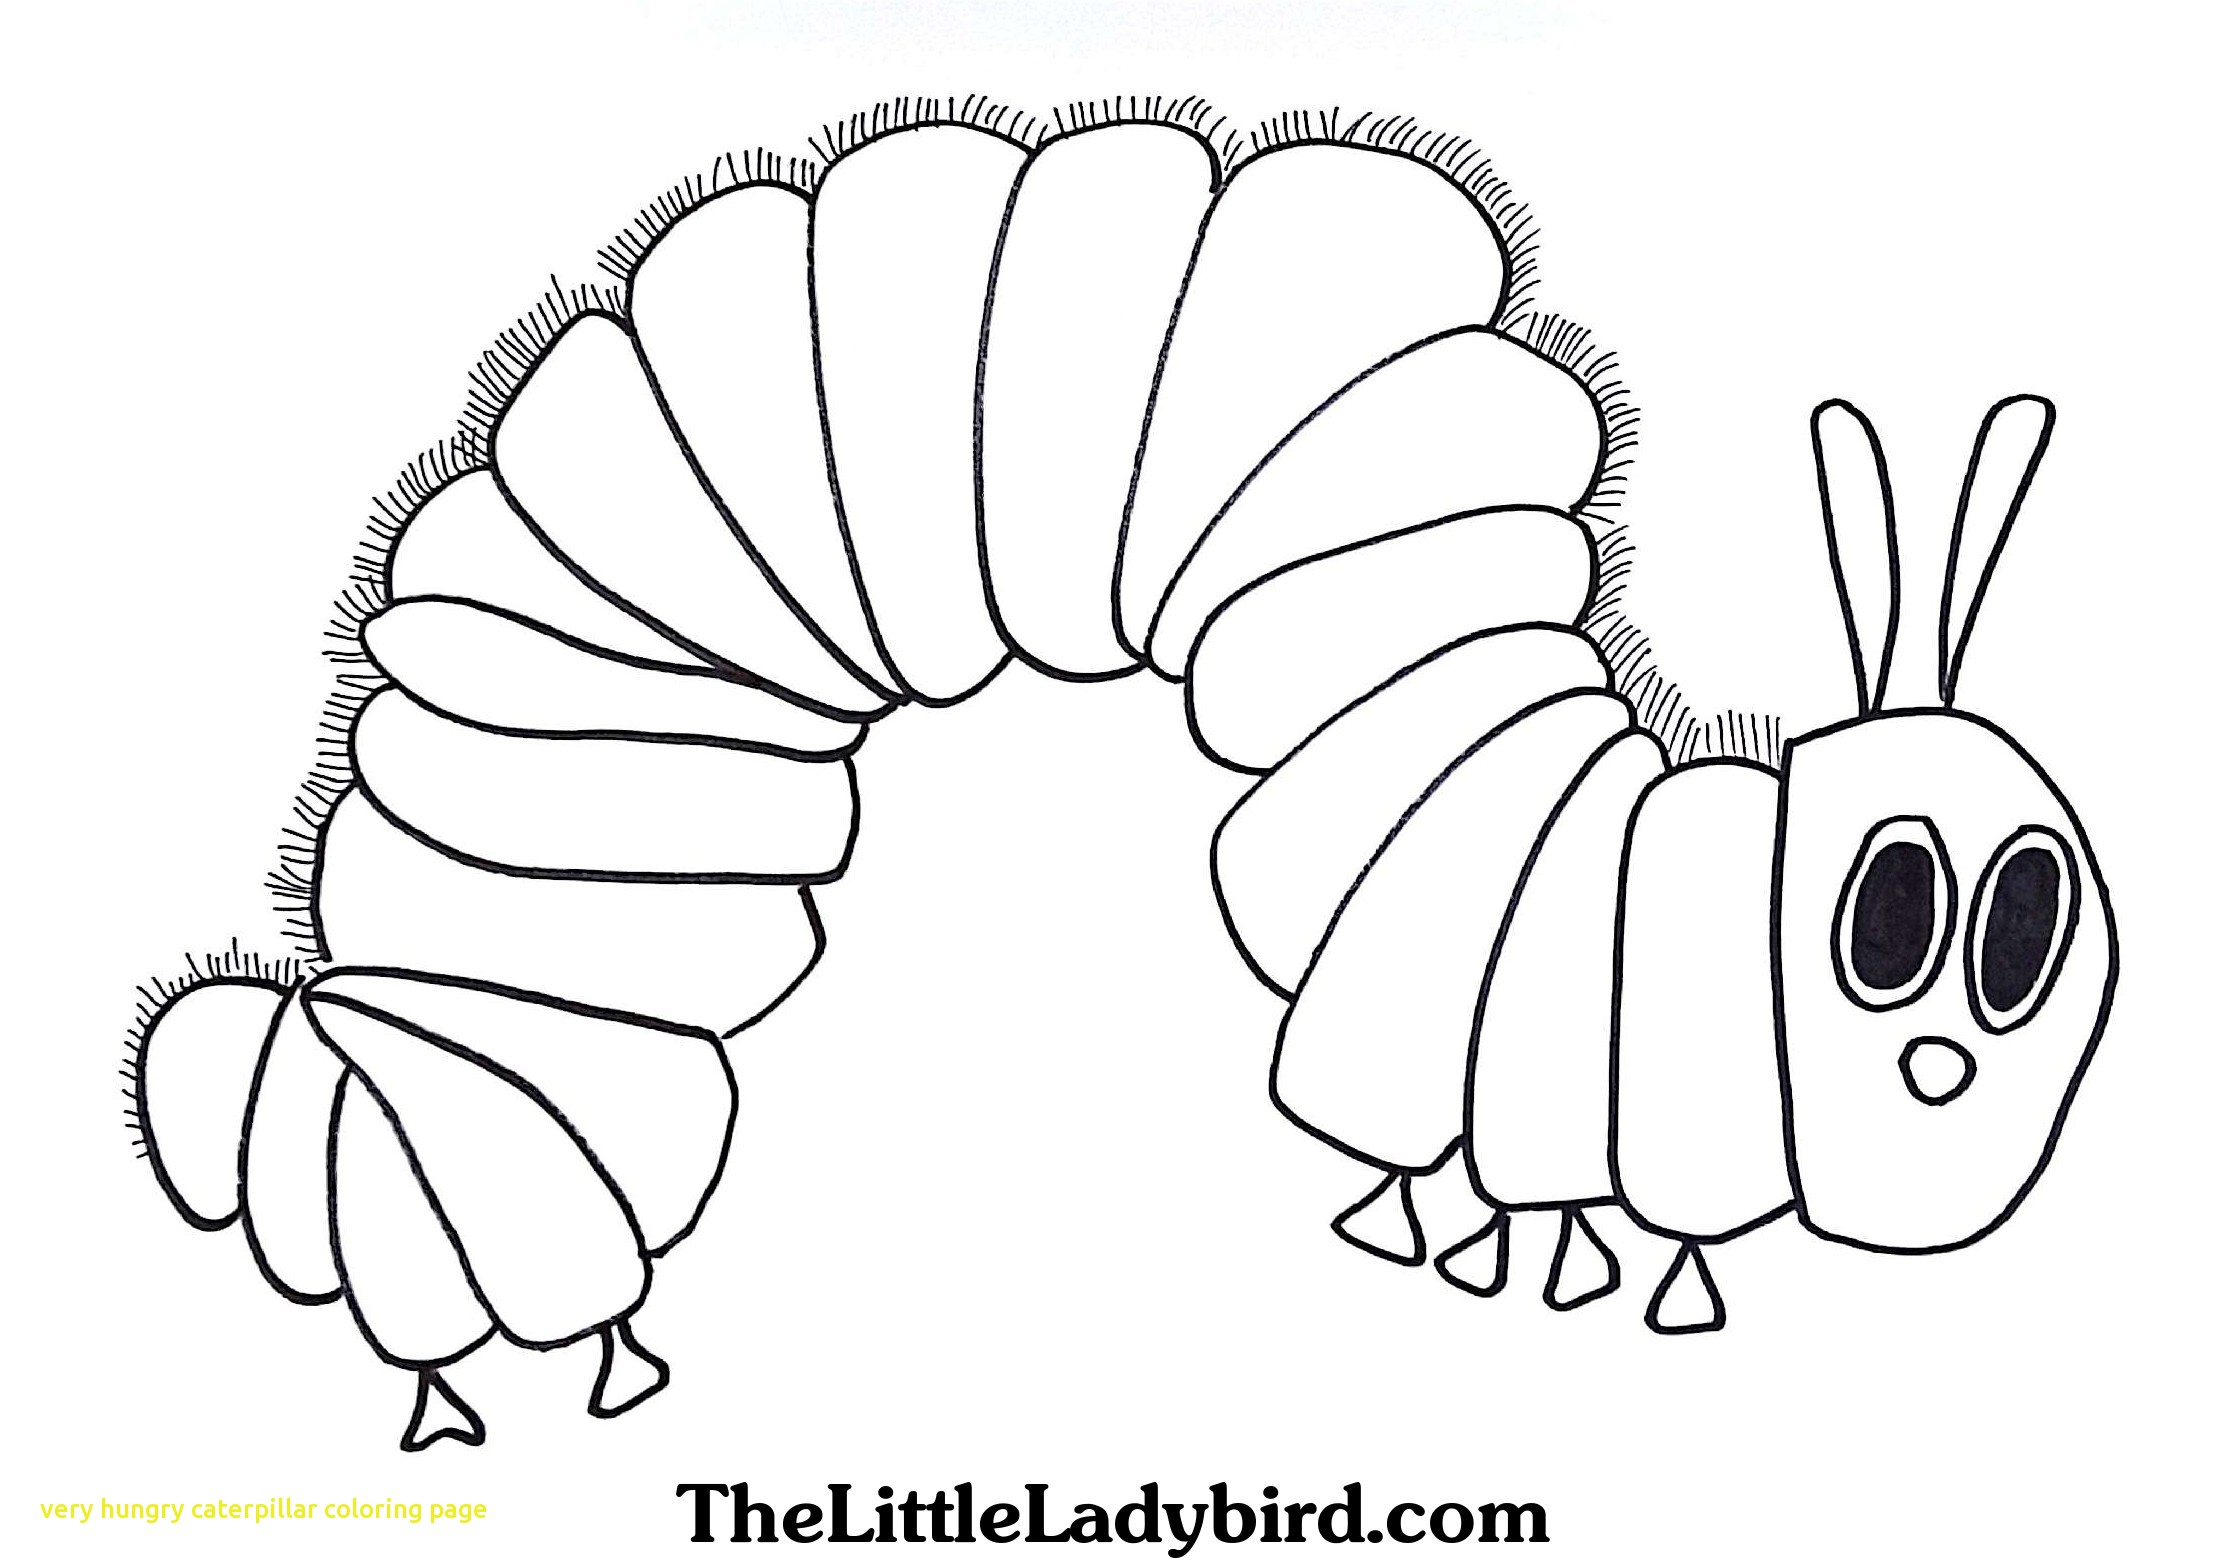 2230x1566 Very Hungry Caterpillar Coloring Page With Very Hungry Caterpillar